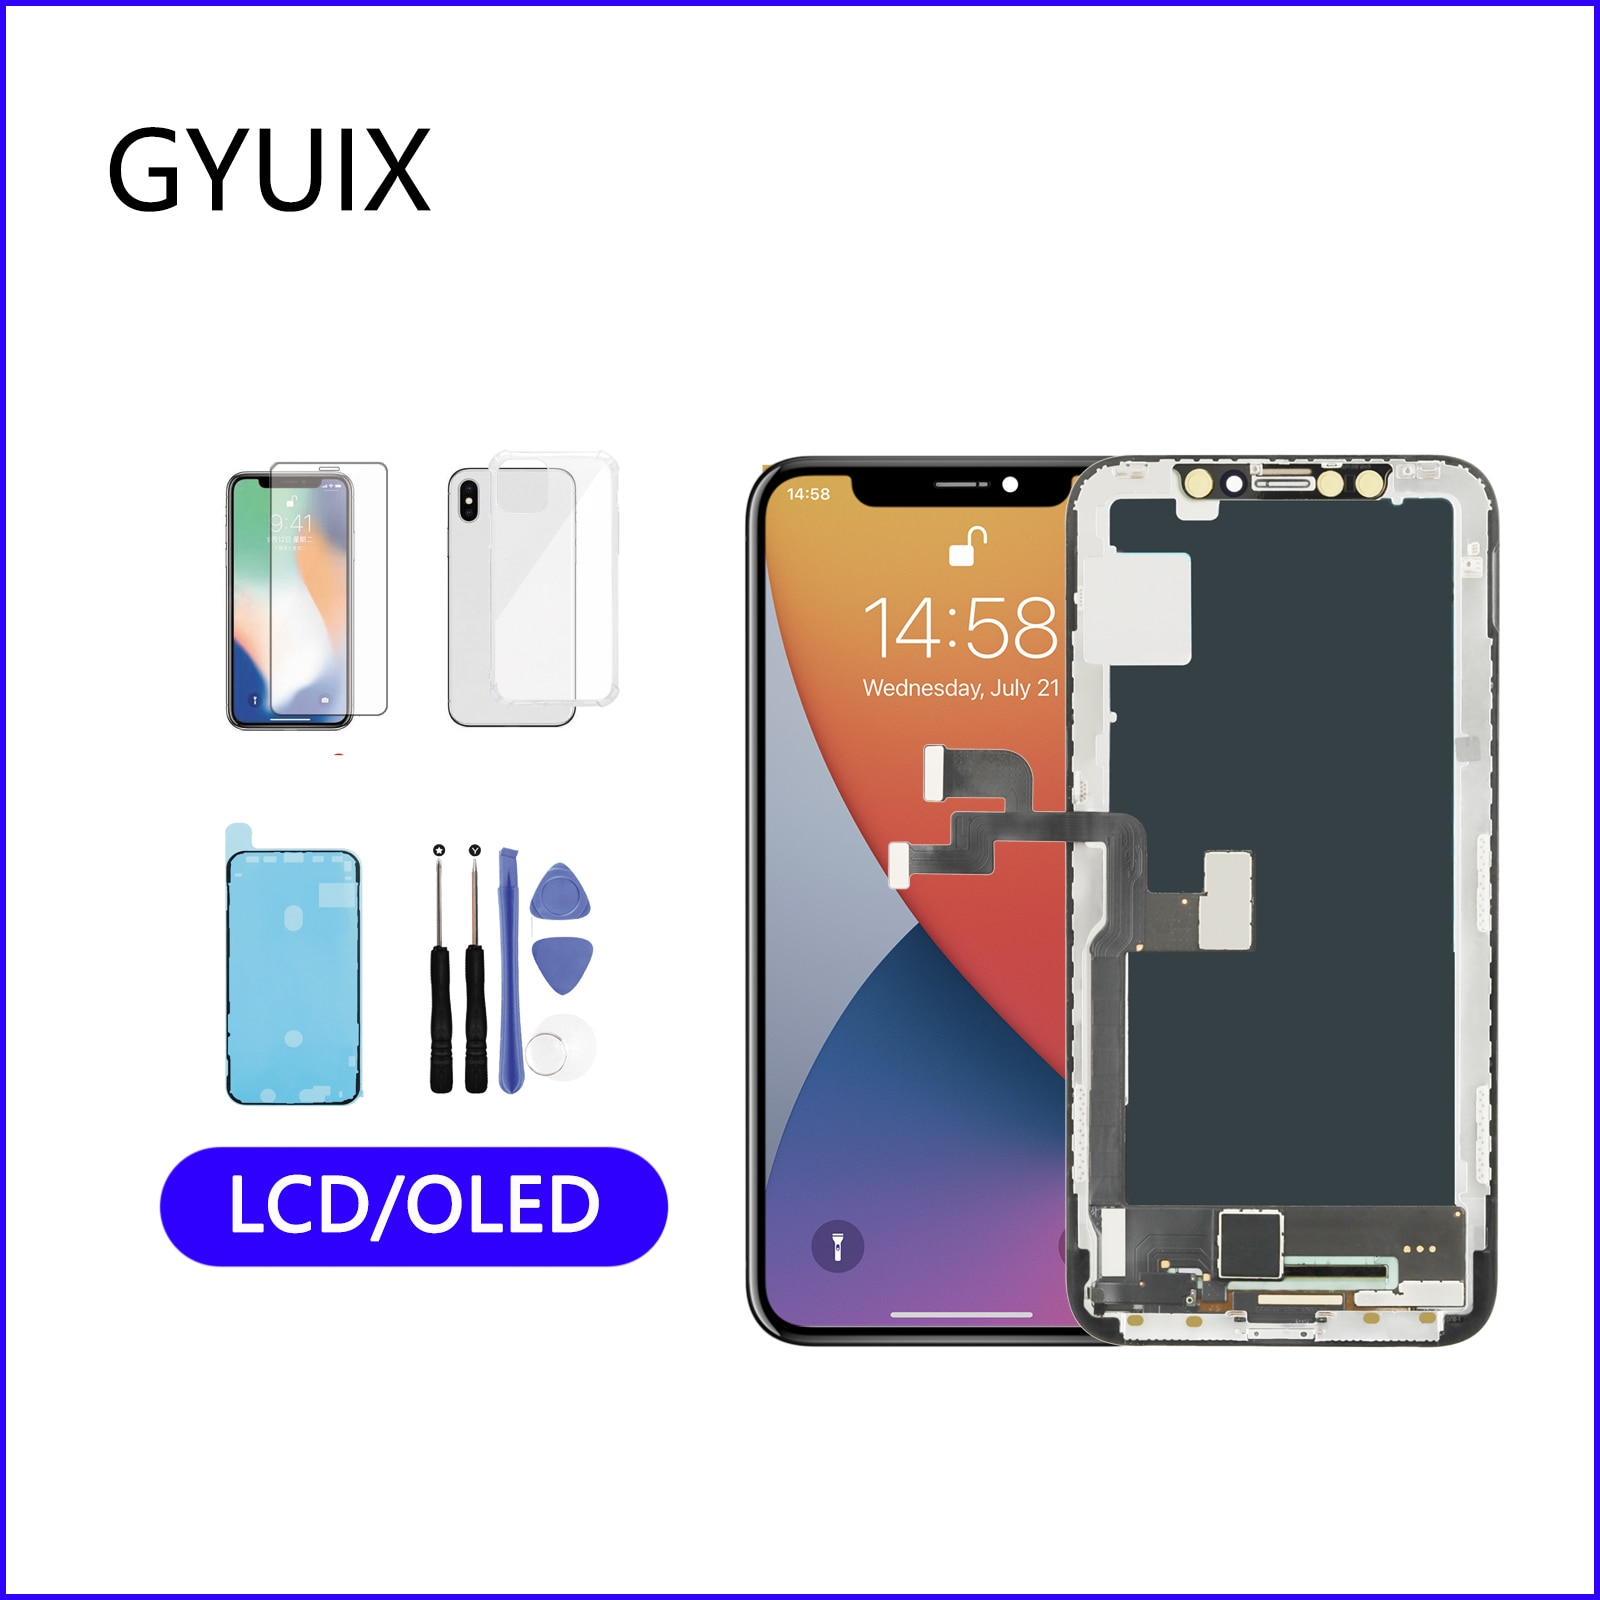 Used To iphone X XS XR iPhone 11 pro max OLED Screen iPhone 11 TFT LCD Screen  Be Used For Replacement the Original Display